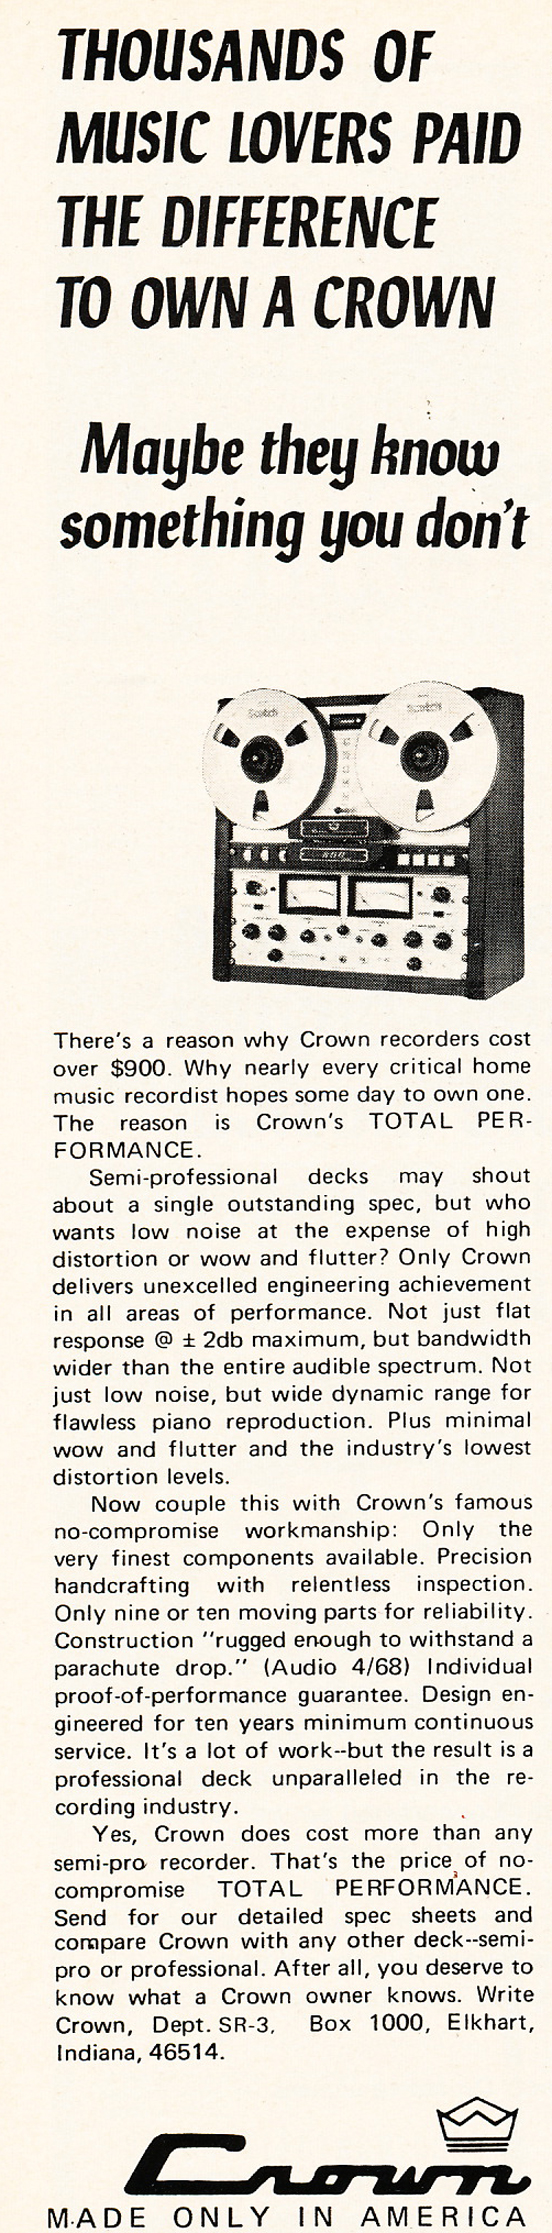 1971 Crown reel to reel tape recorder ad in the Reel2ReelTexas.com vintage recording collection